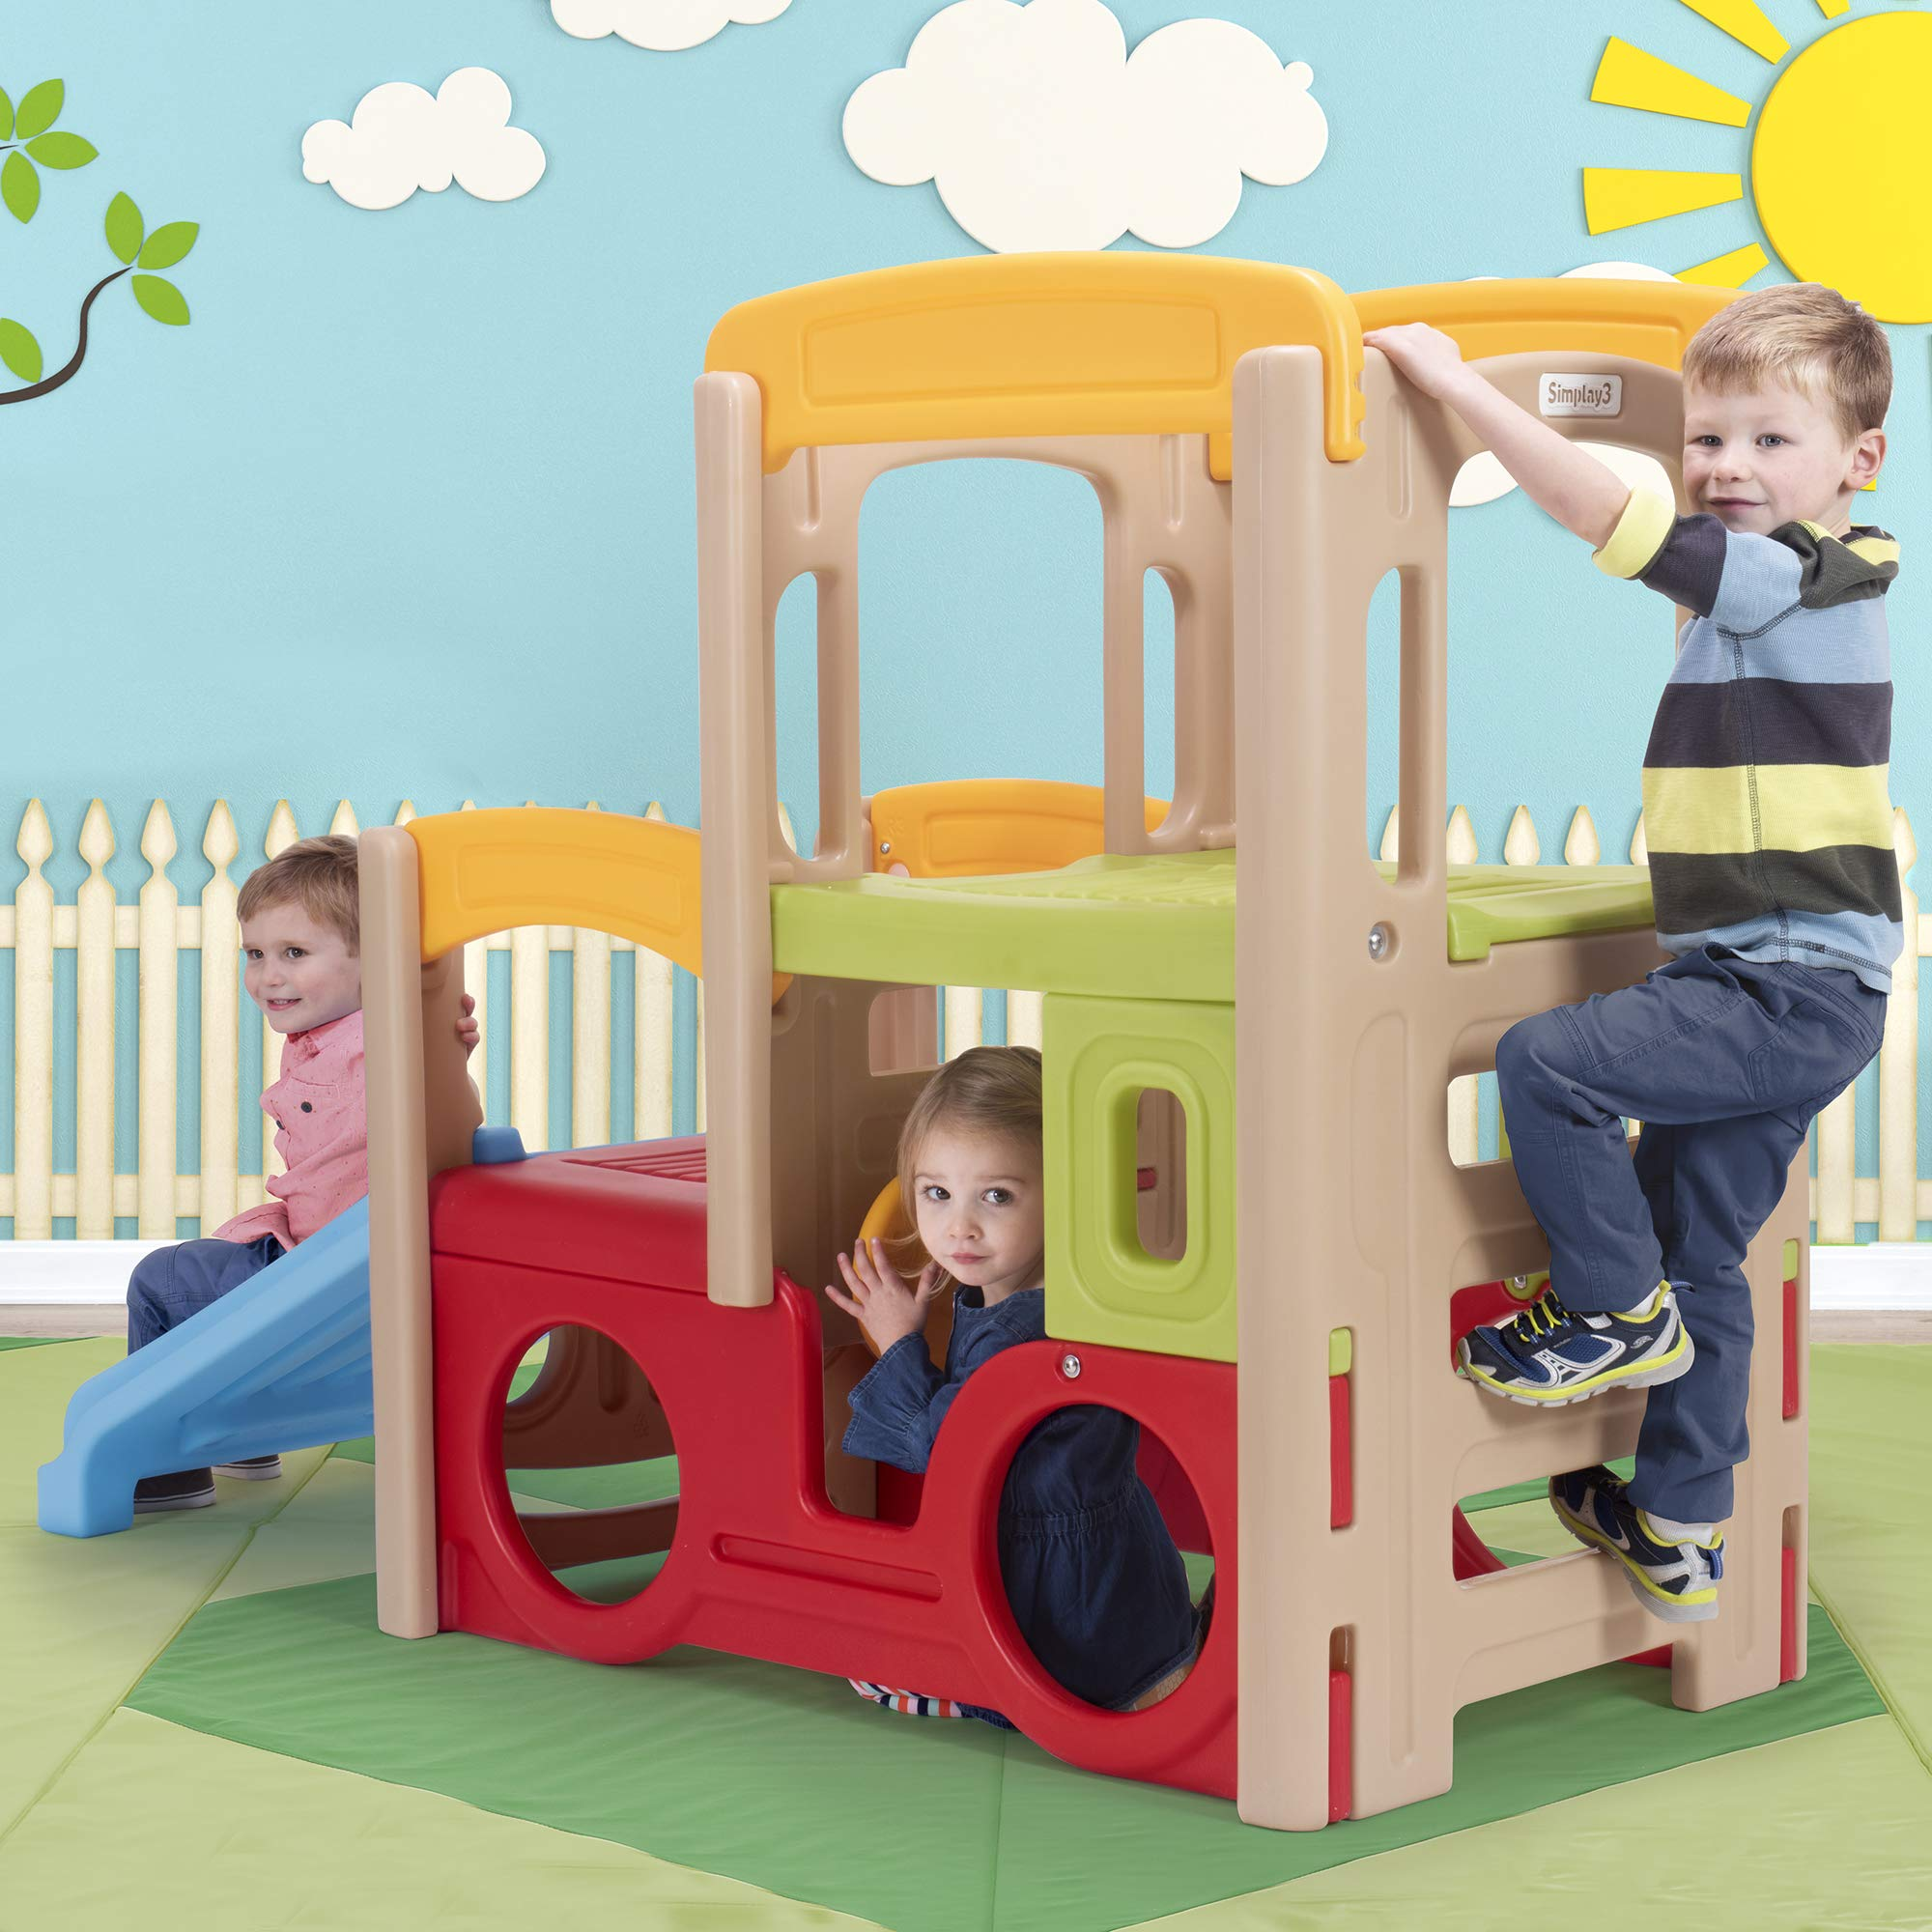 Simplay3 Young Explorers Adventure Climber - Indoor Outdoor Crawl Climb Drive Slide Playset for Children by Simplay3 (Image #7)